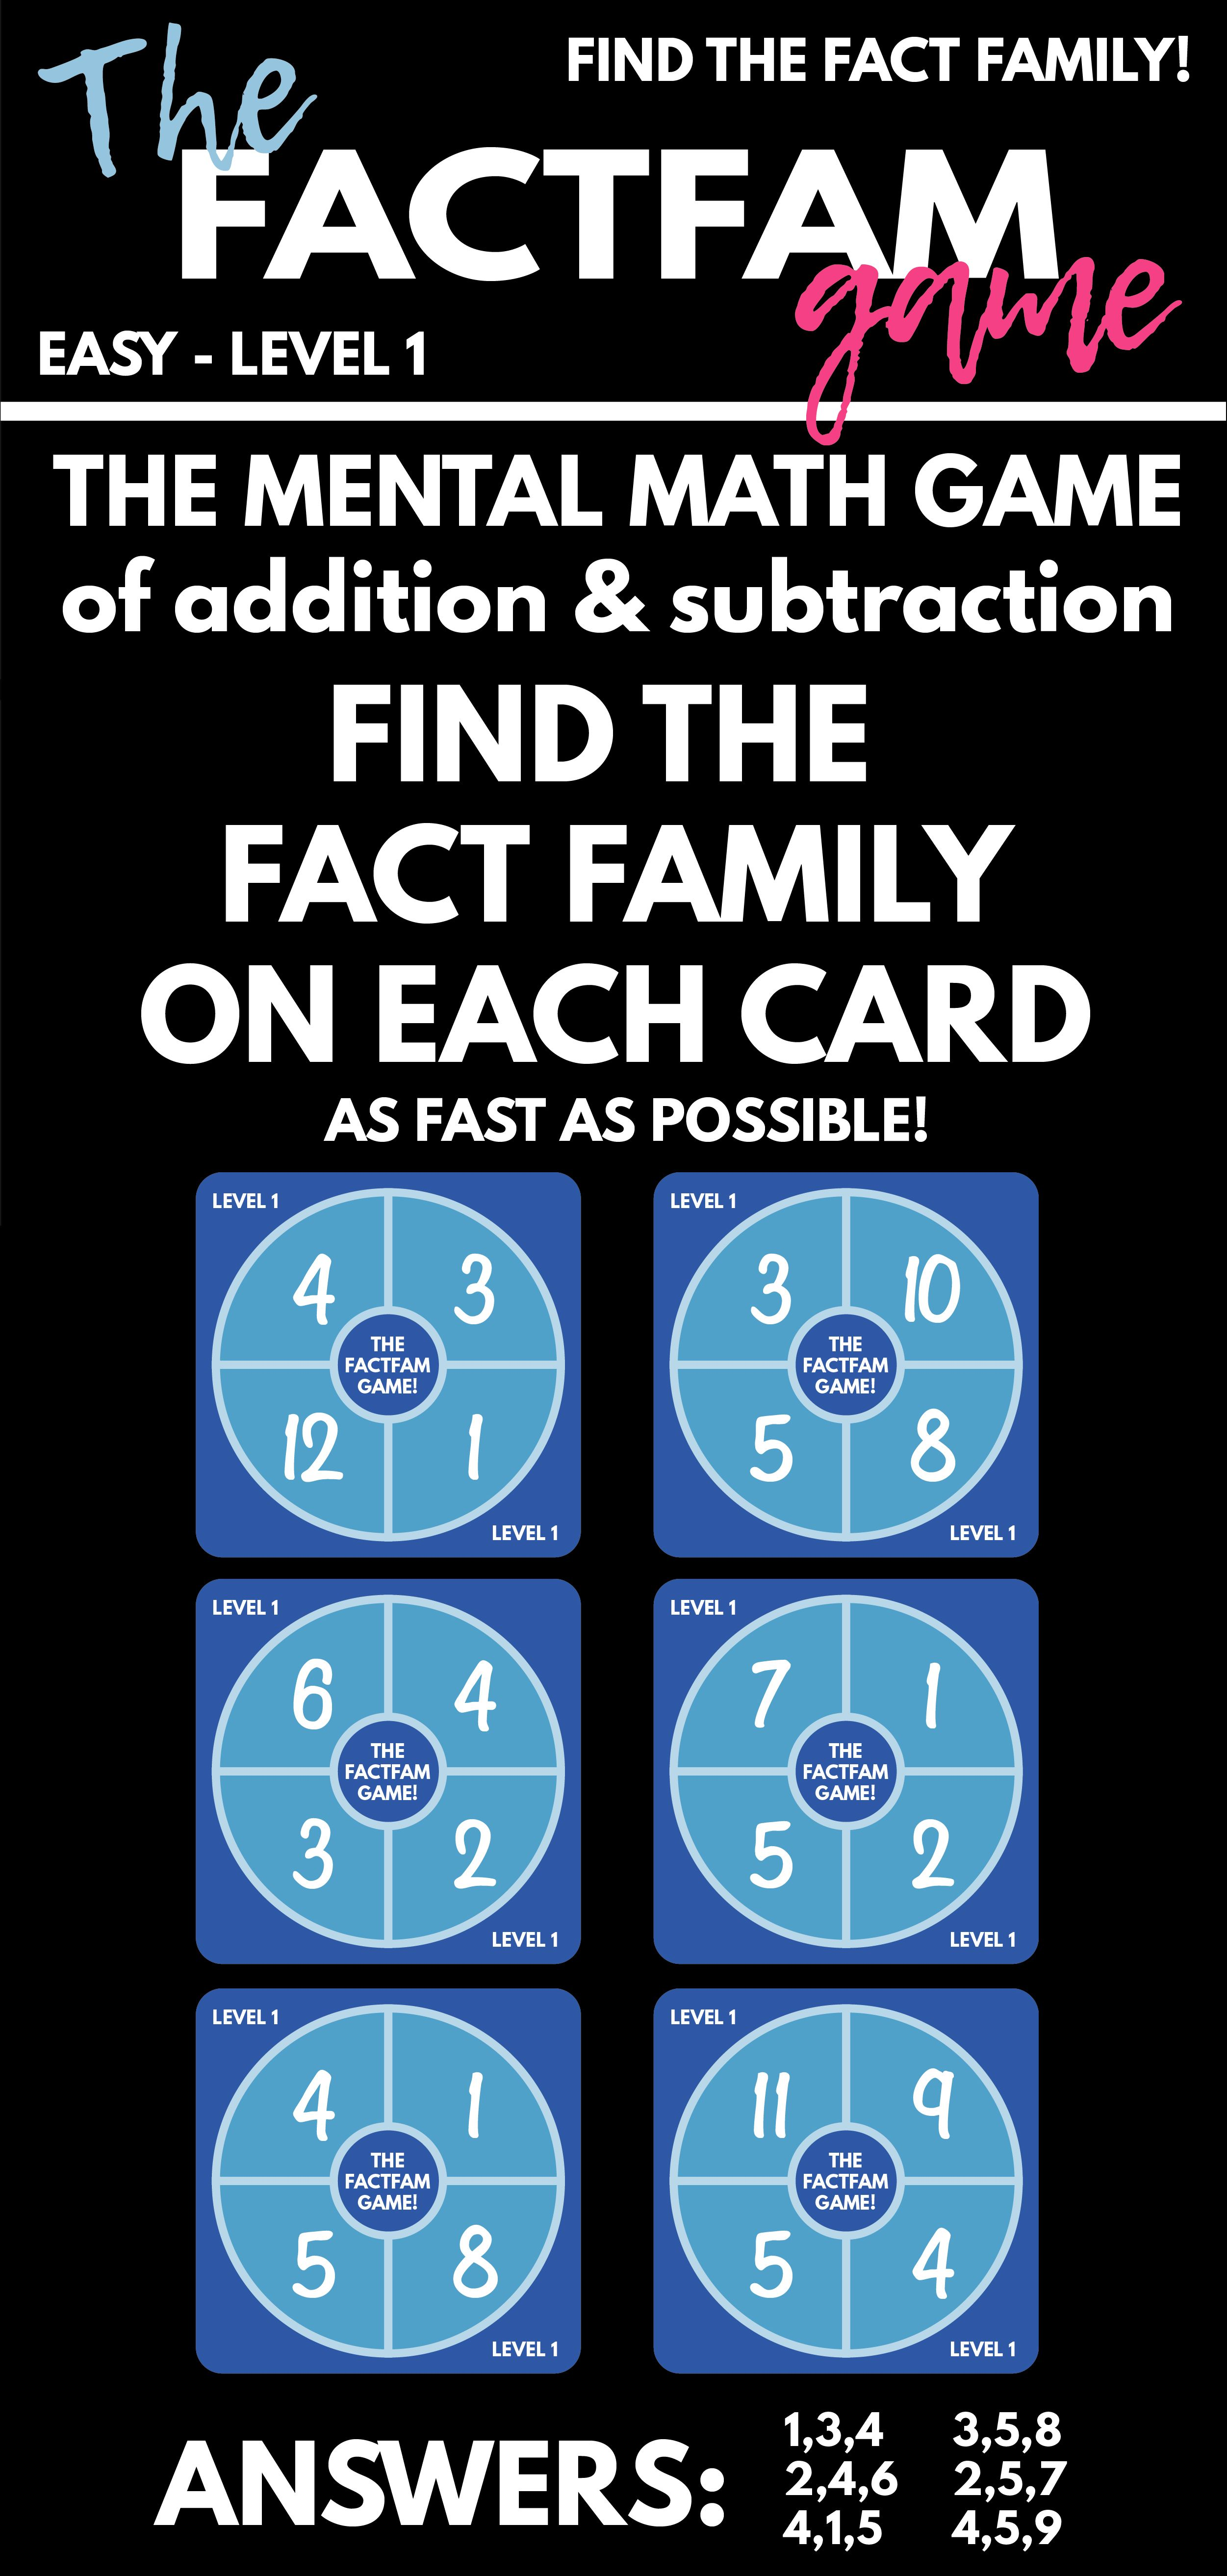 The FactFam Game! Find the Fact Family! Mental Math Game